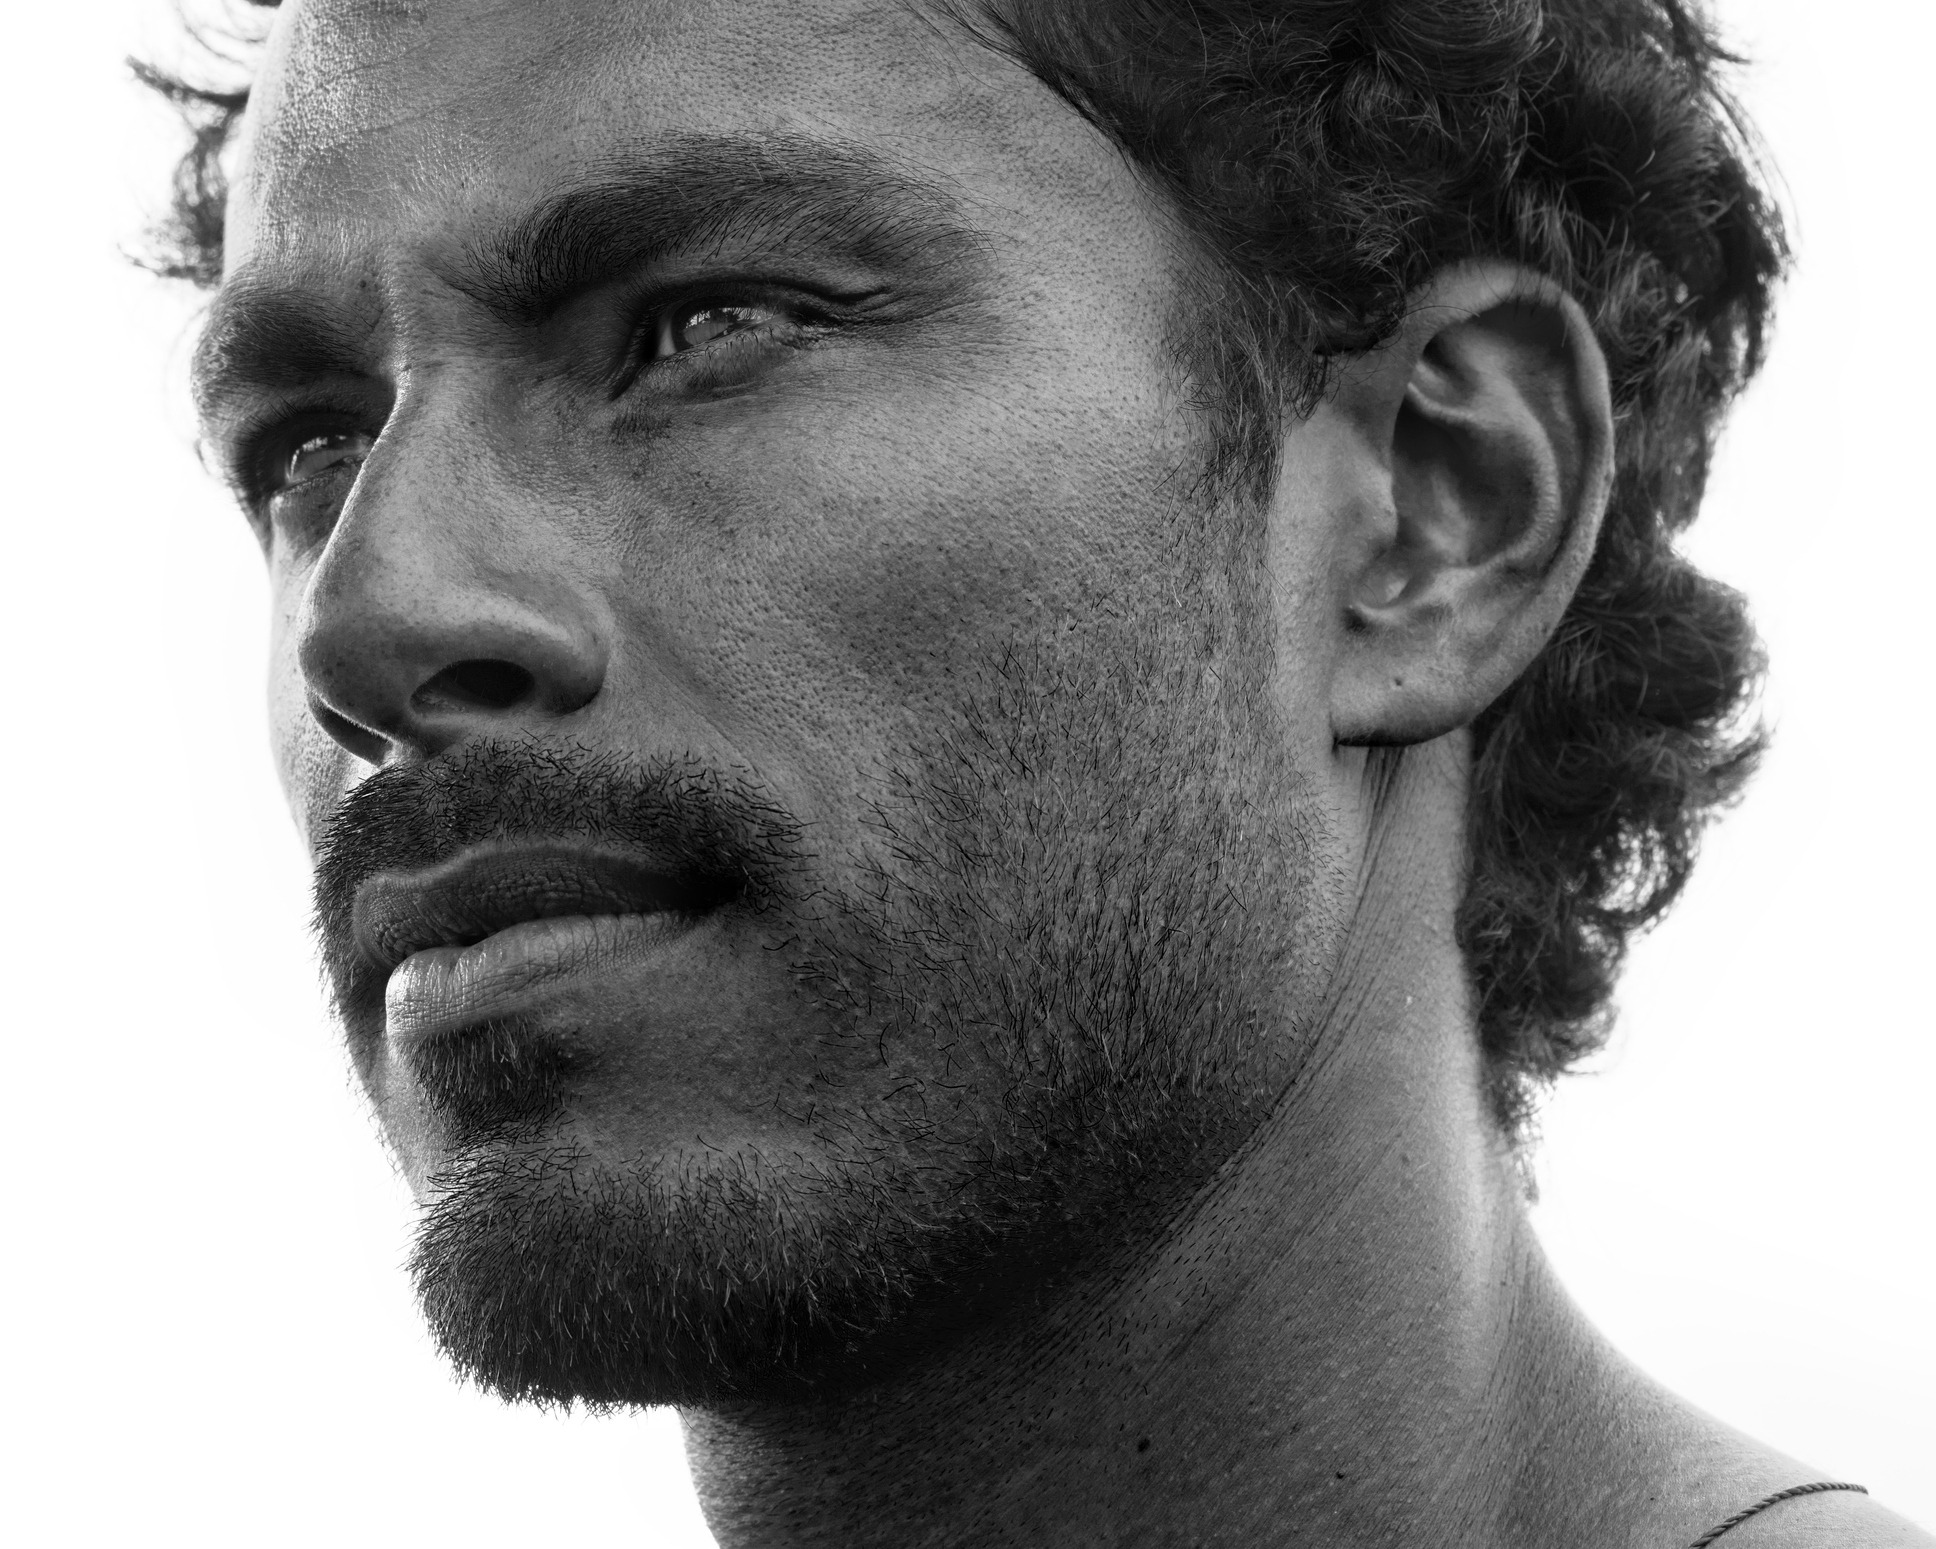 Close up portrait of healthy man with black hair, strong features, looking straight ahead at a three quarters angle, black and white